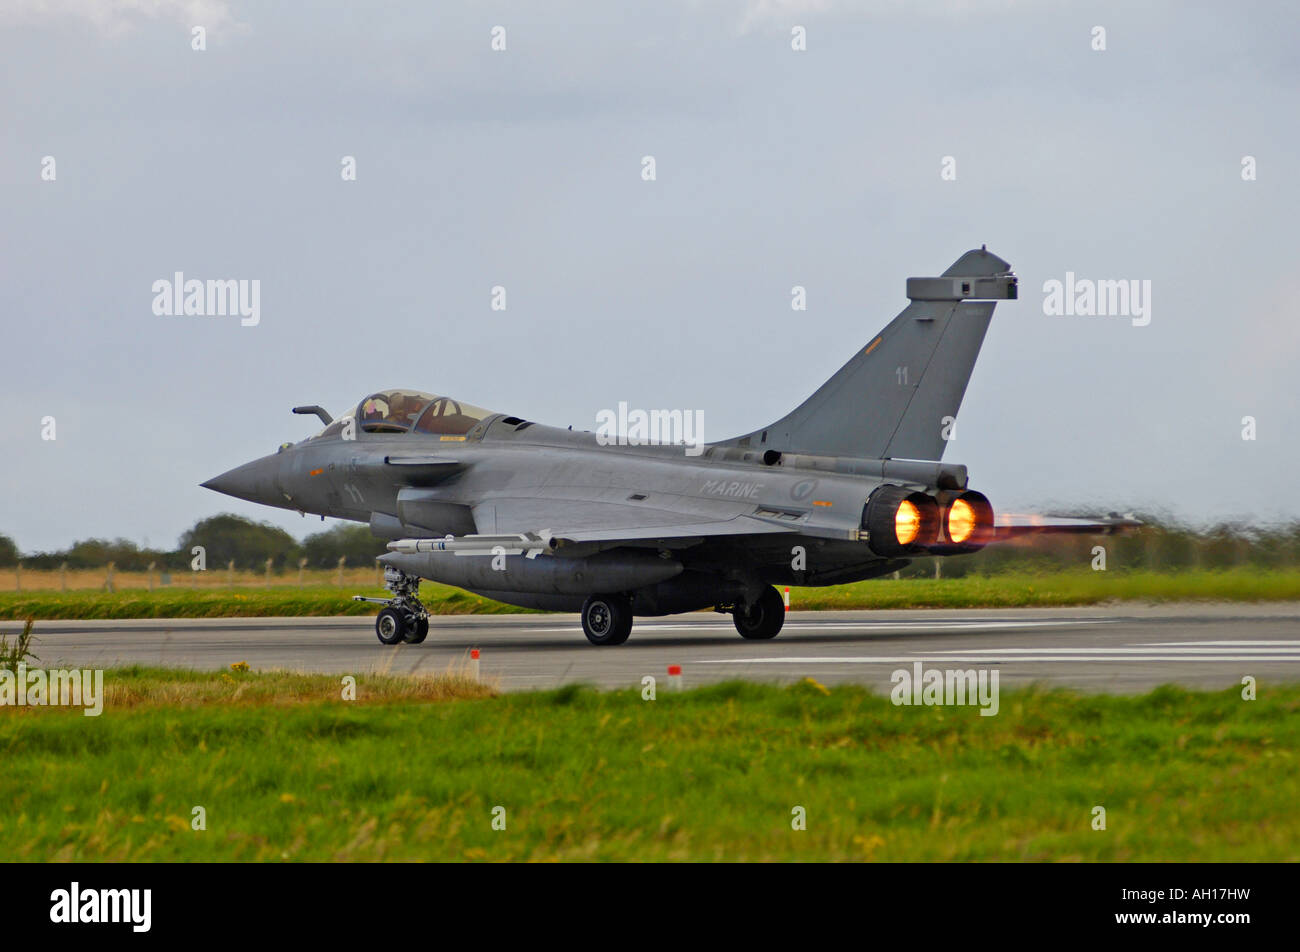 The Dassault Rafale M (or 'Squall' in English) is a French twin-engined delta-wing highly agile multi-role - Stock Image